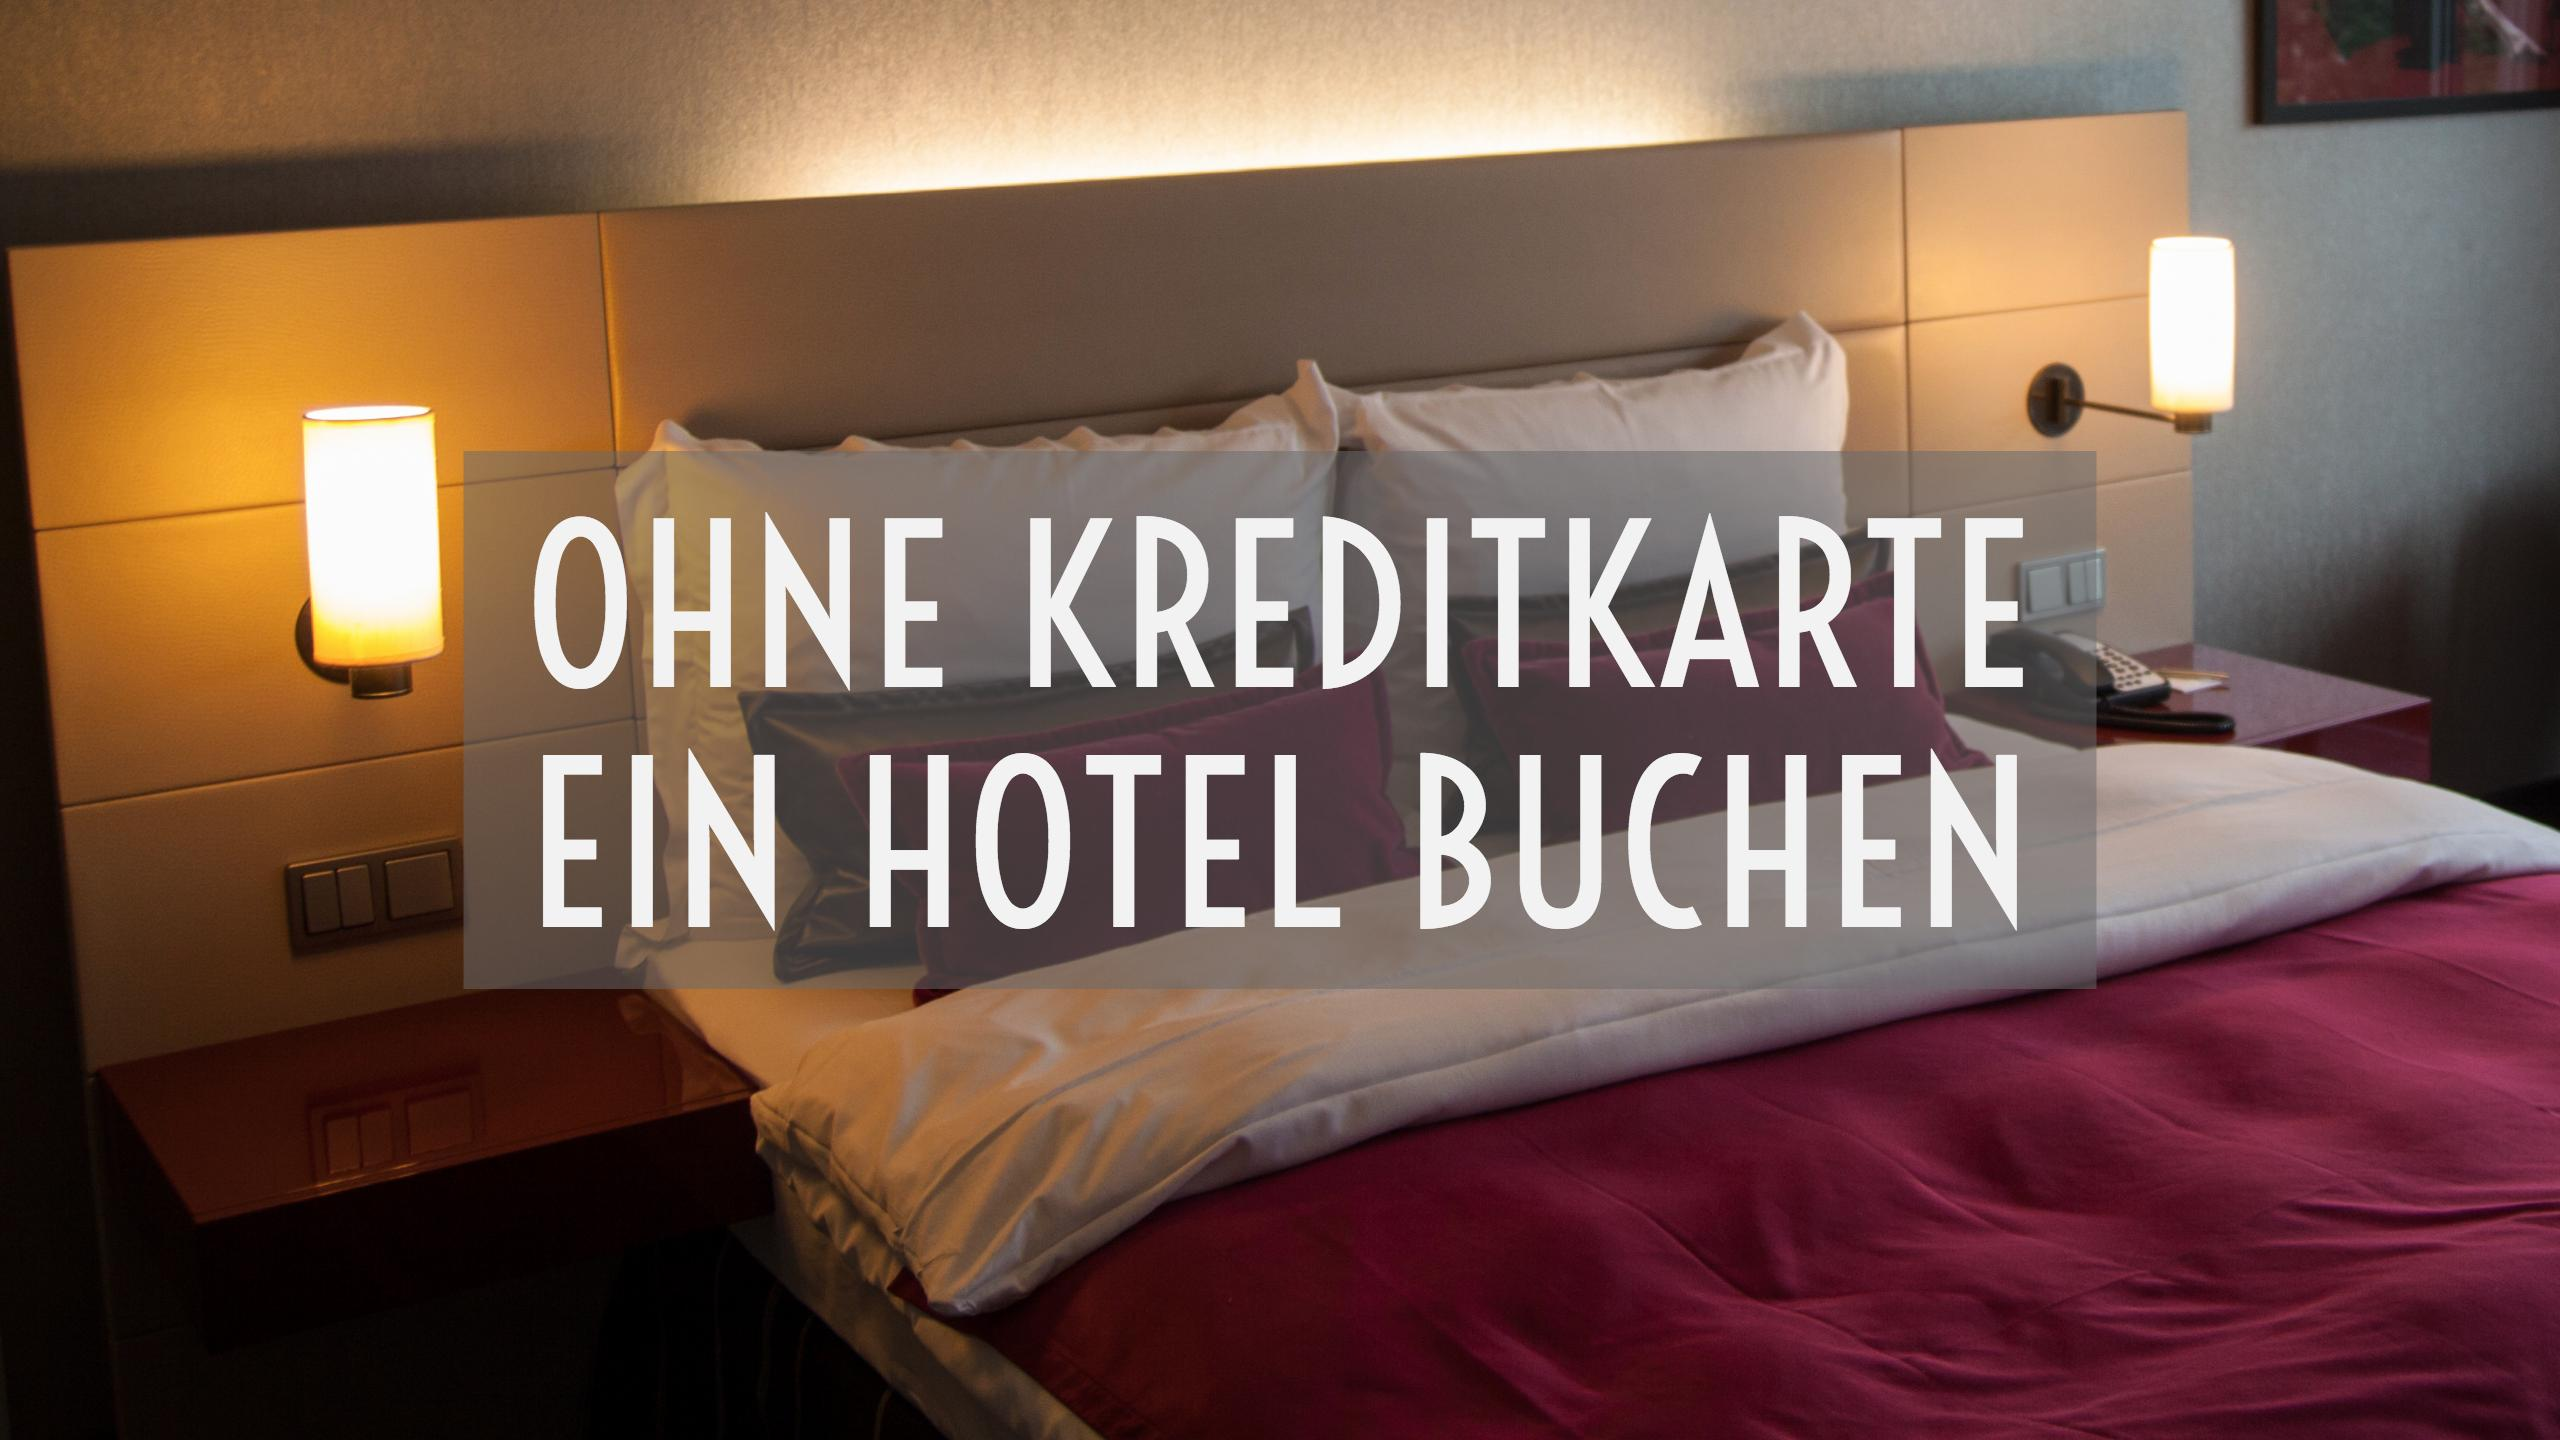 ratgeber hotel buchen ohne kreditkarte travel. Black Bedroom Furniture Sets. Home Design Ideas